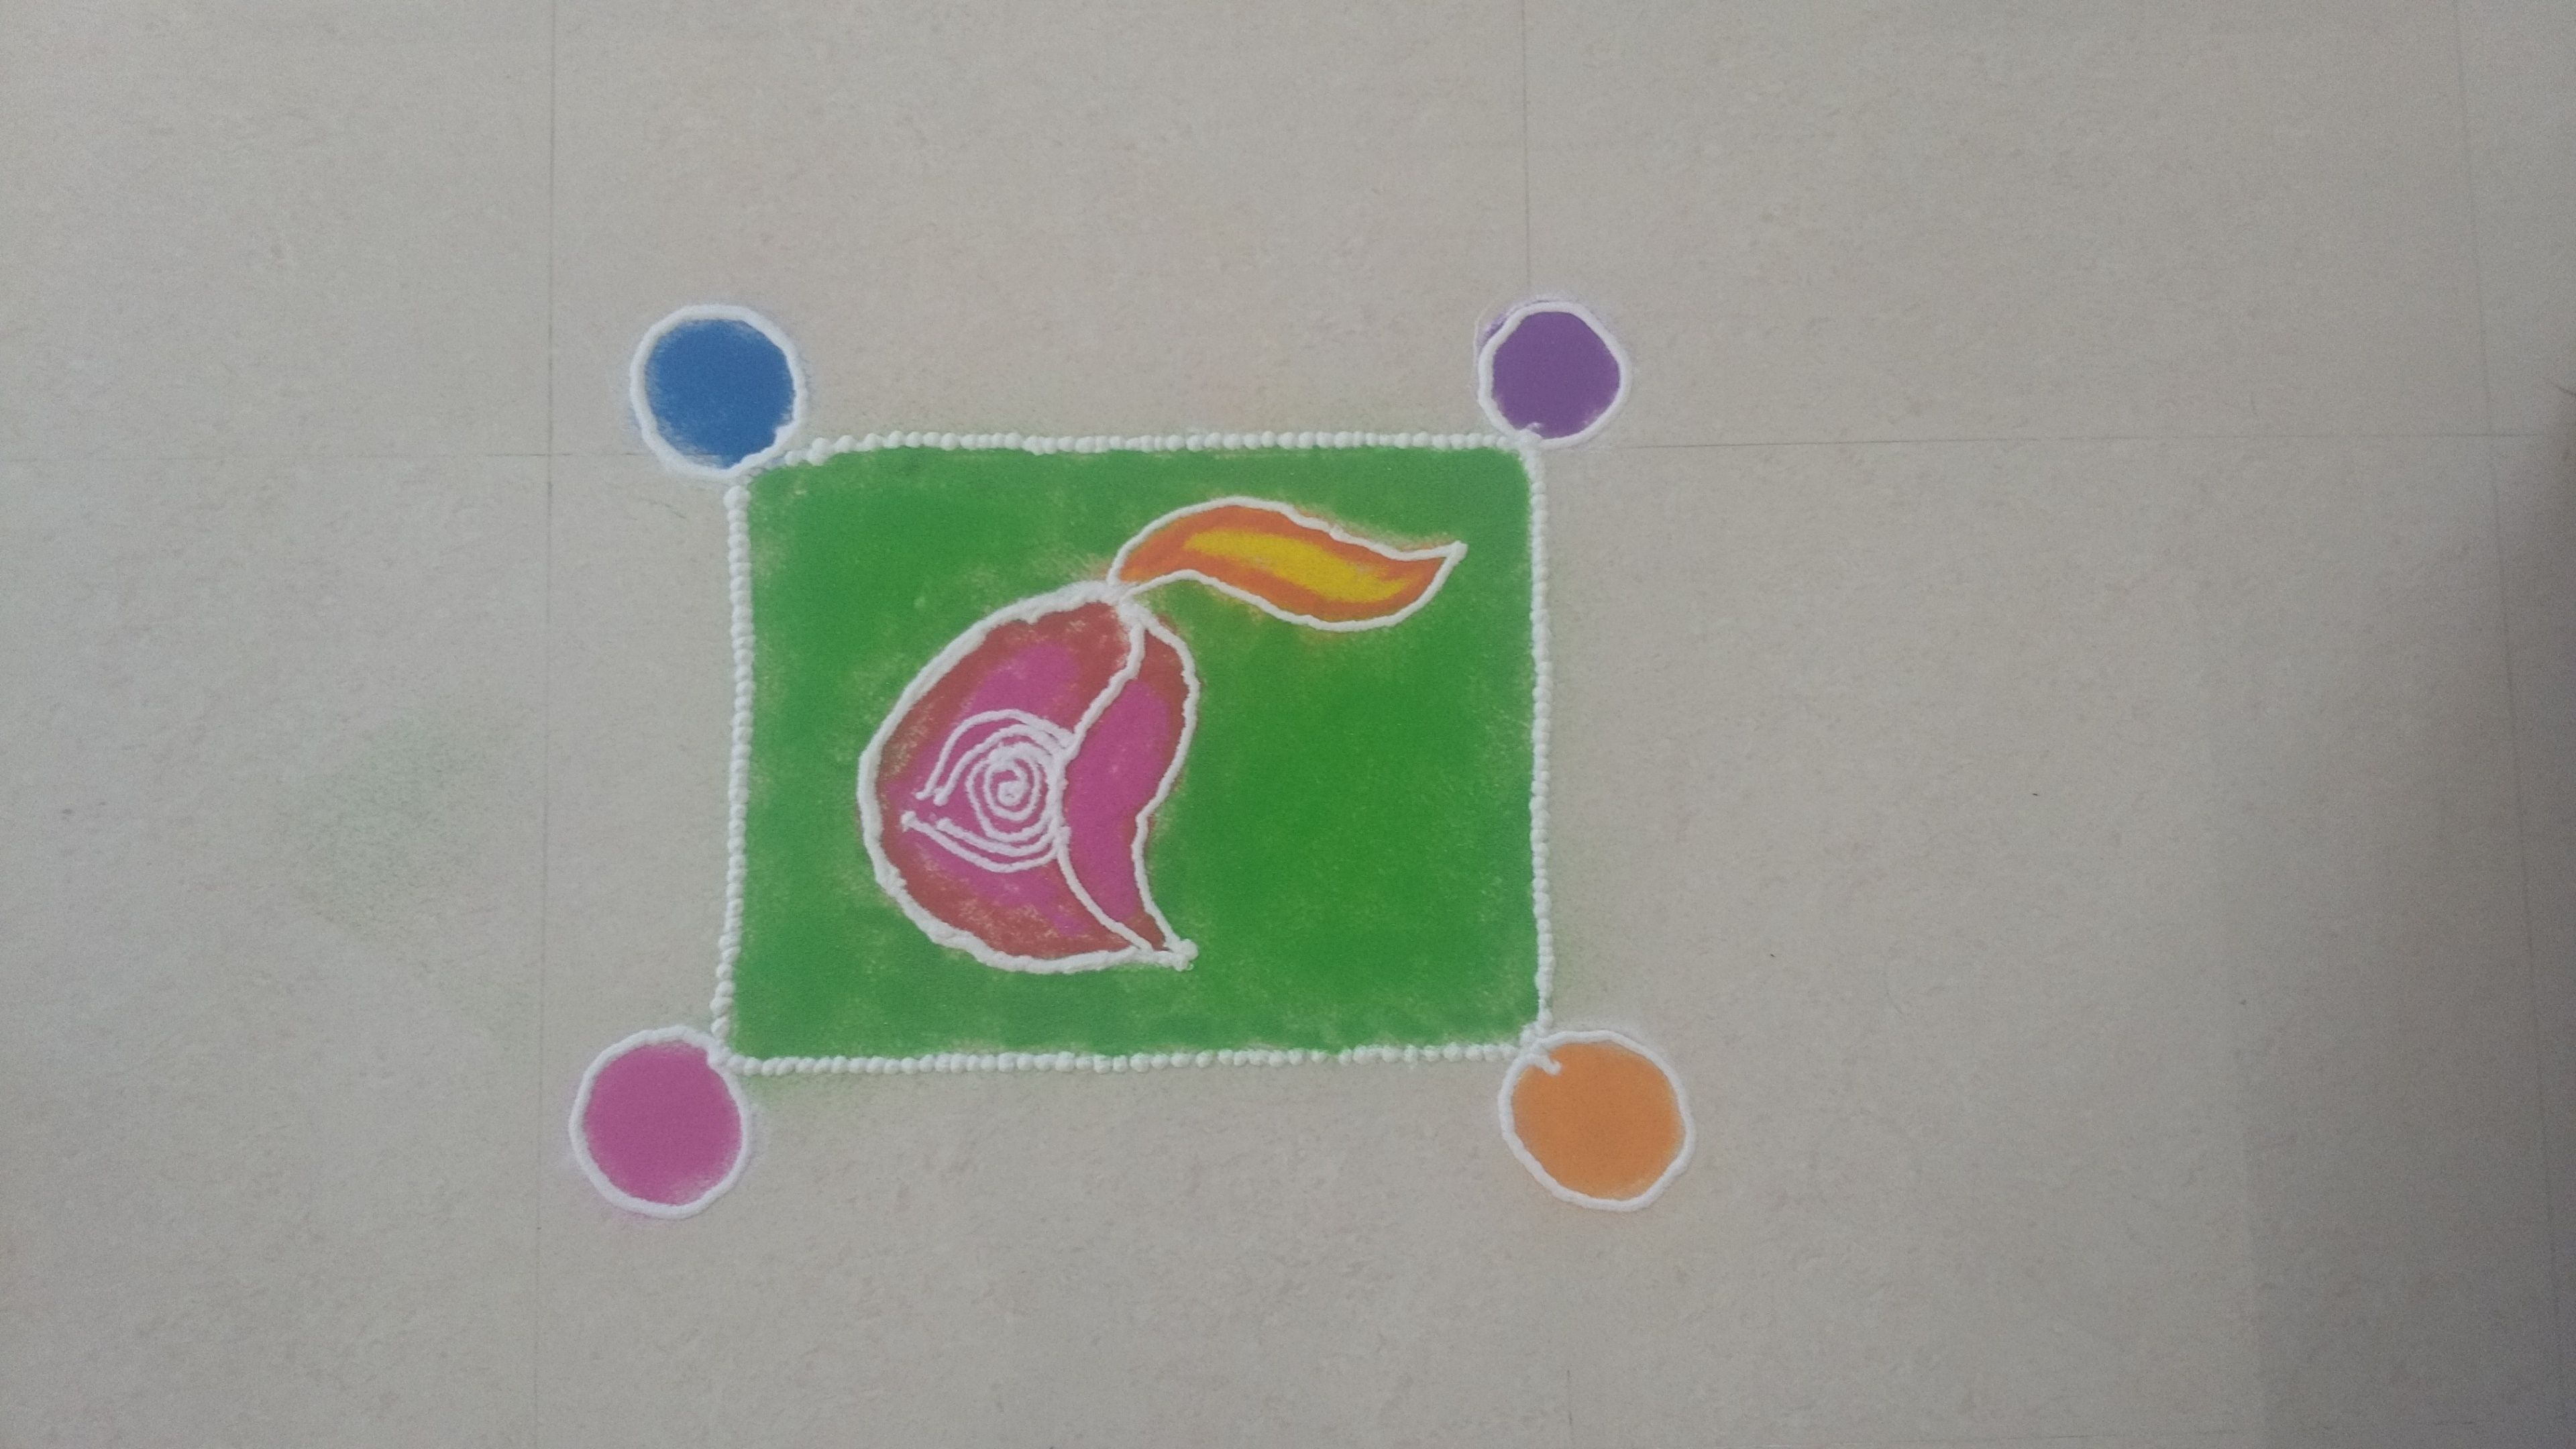 Diwali Beautiful New Rangoli Designs/ इस दिवाली पर बनाये Happy Diwali Colourful Rangoli Designs - #rangolidesignsdiwali इस दिवाली पर बनाये सरल और आसान रंगोली - Diwali Celebrations || Diwali Latest Rangoli Designs | diwali rangoli desgins | Beautiful Rangoli Design | Rangoli Easy and Beautiful Designs for Diwali - #rangolidesignsdiwali